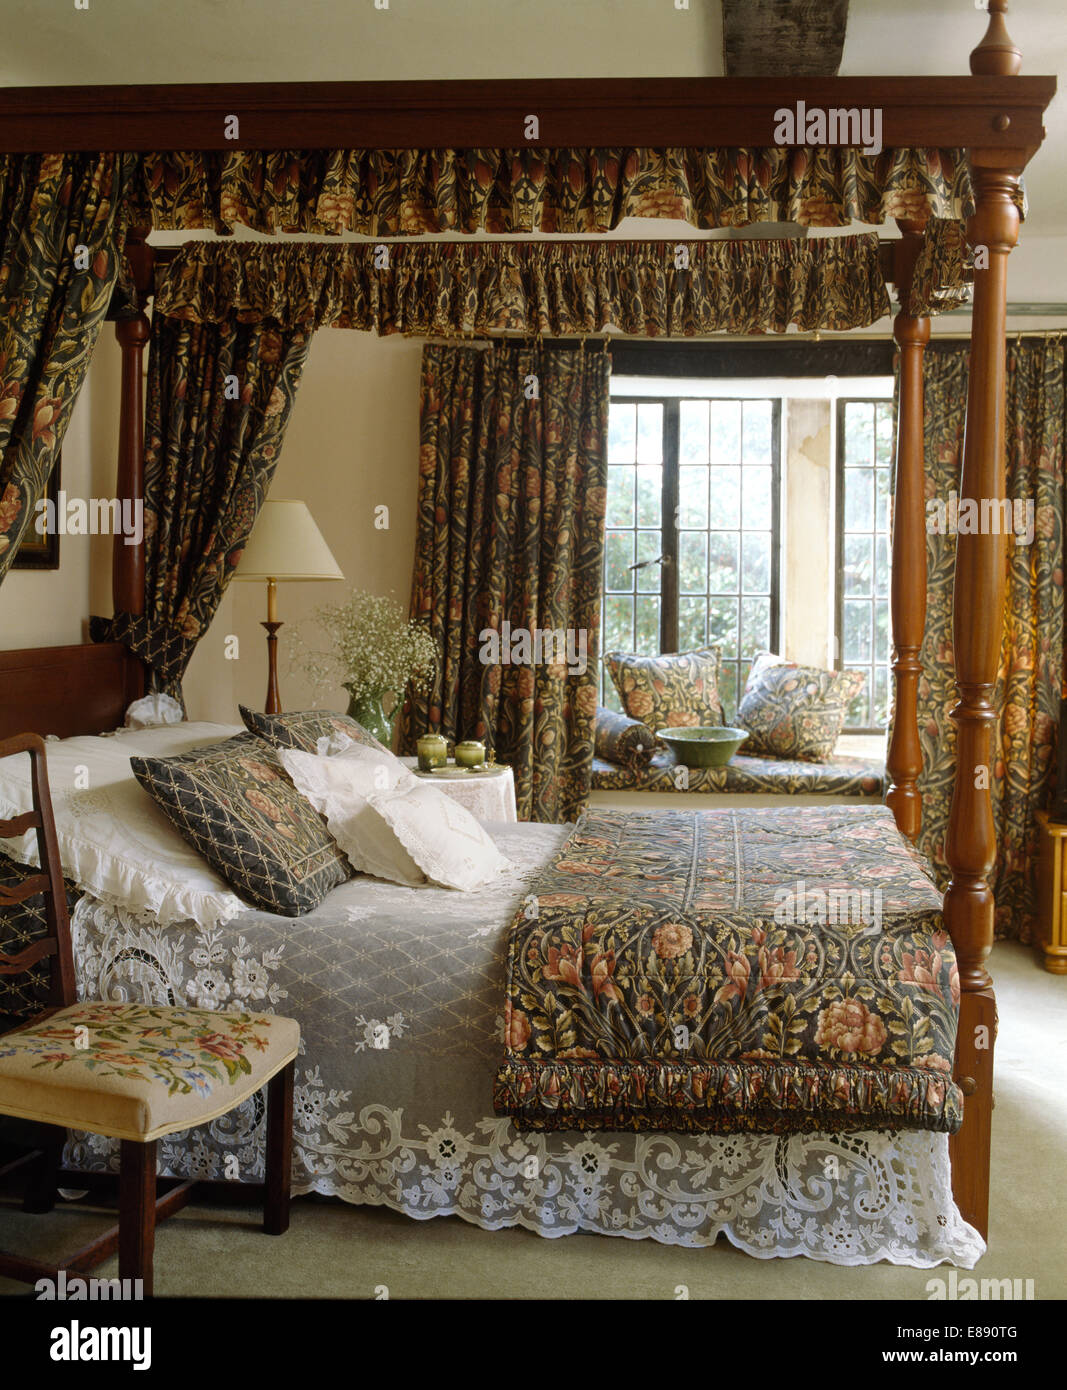 William Morris drapes on four poster bed with lace bed